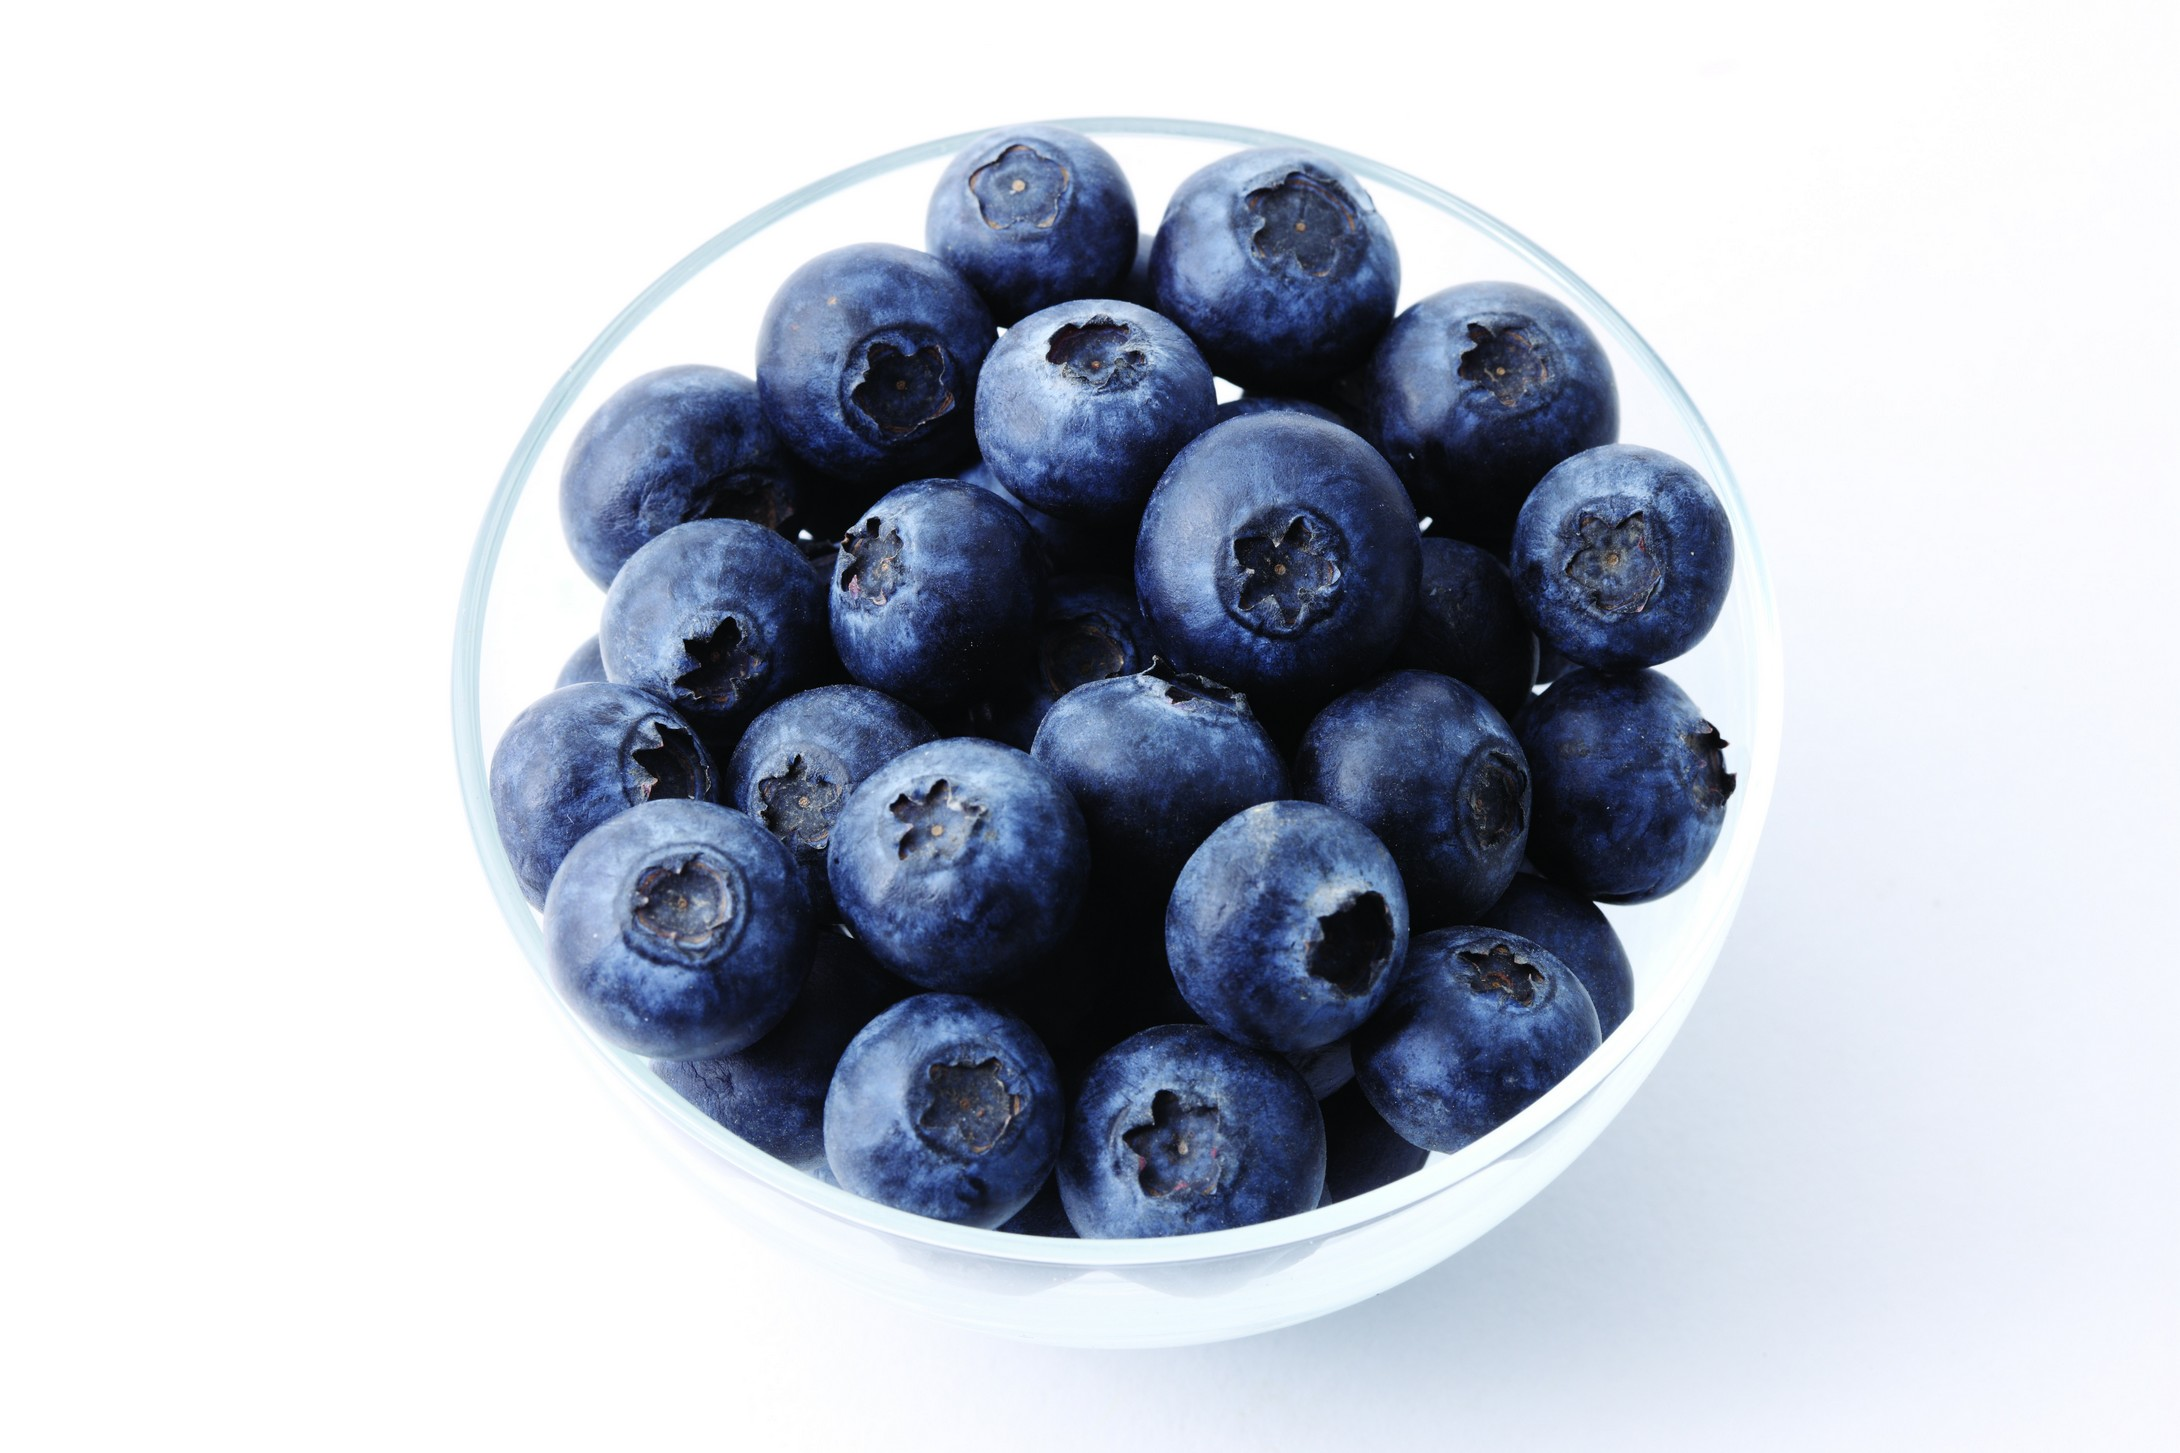 frozen blueberry fruit--iqf blueberries wild fresh blueberries wholesale